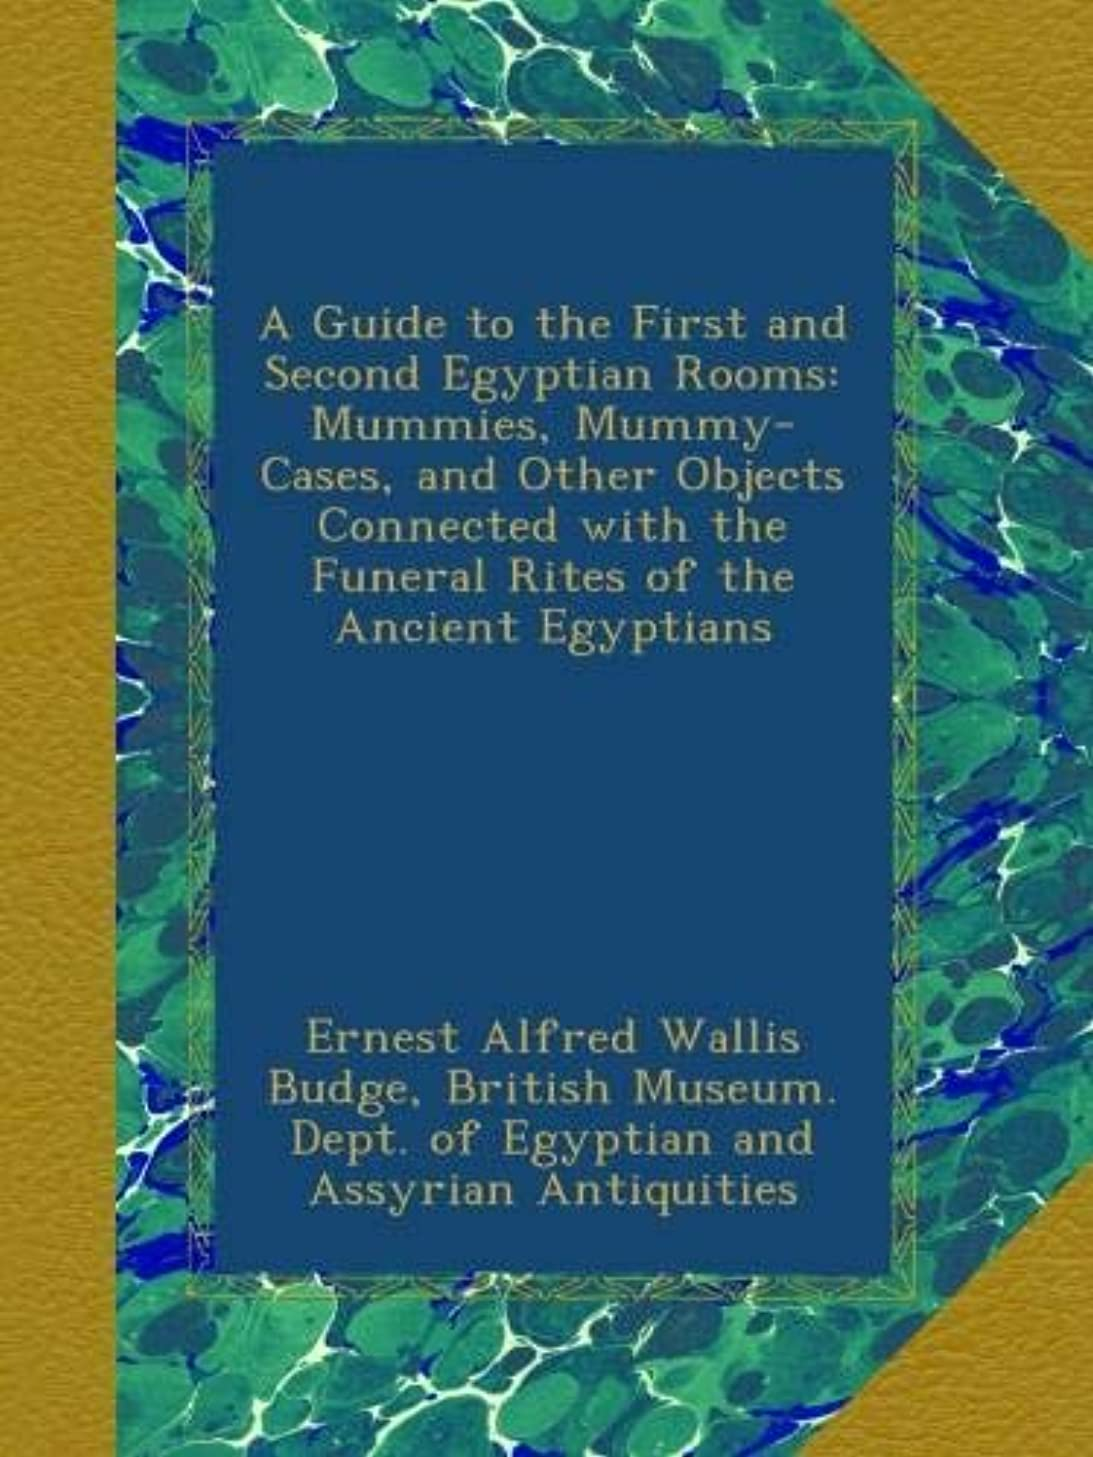 魔術師親前売A Guide to the First and Second Egyptian Rooms: Mummies, Mummy-Cases, and Other Objects Connected with the Funeral Rites of the Ancient Egyptians